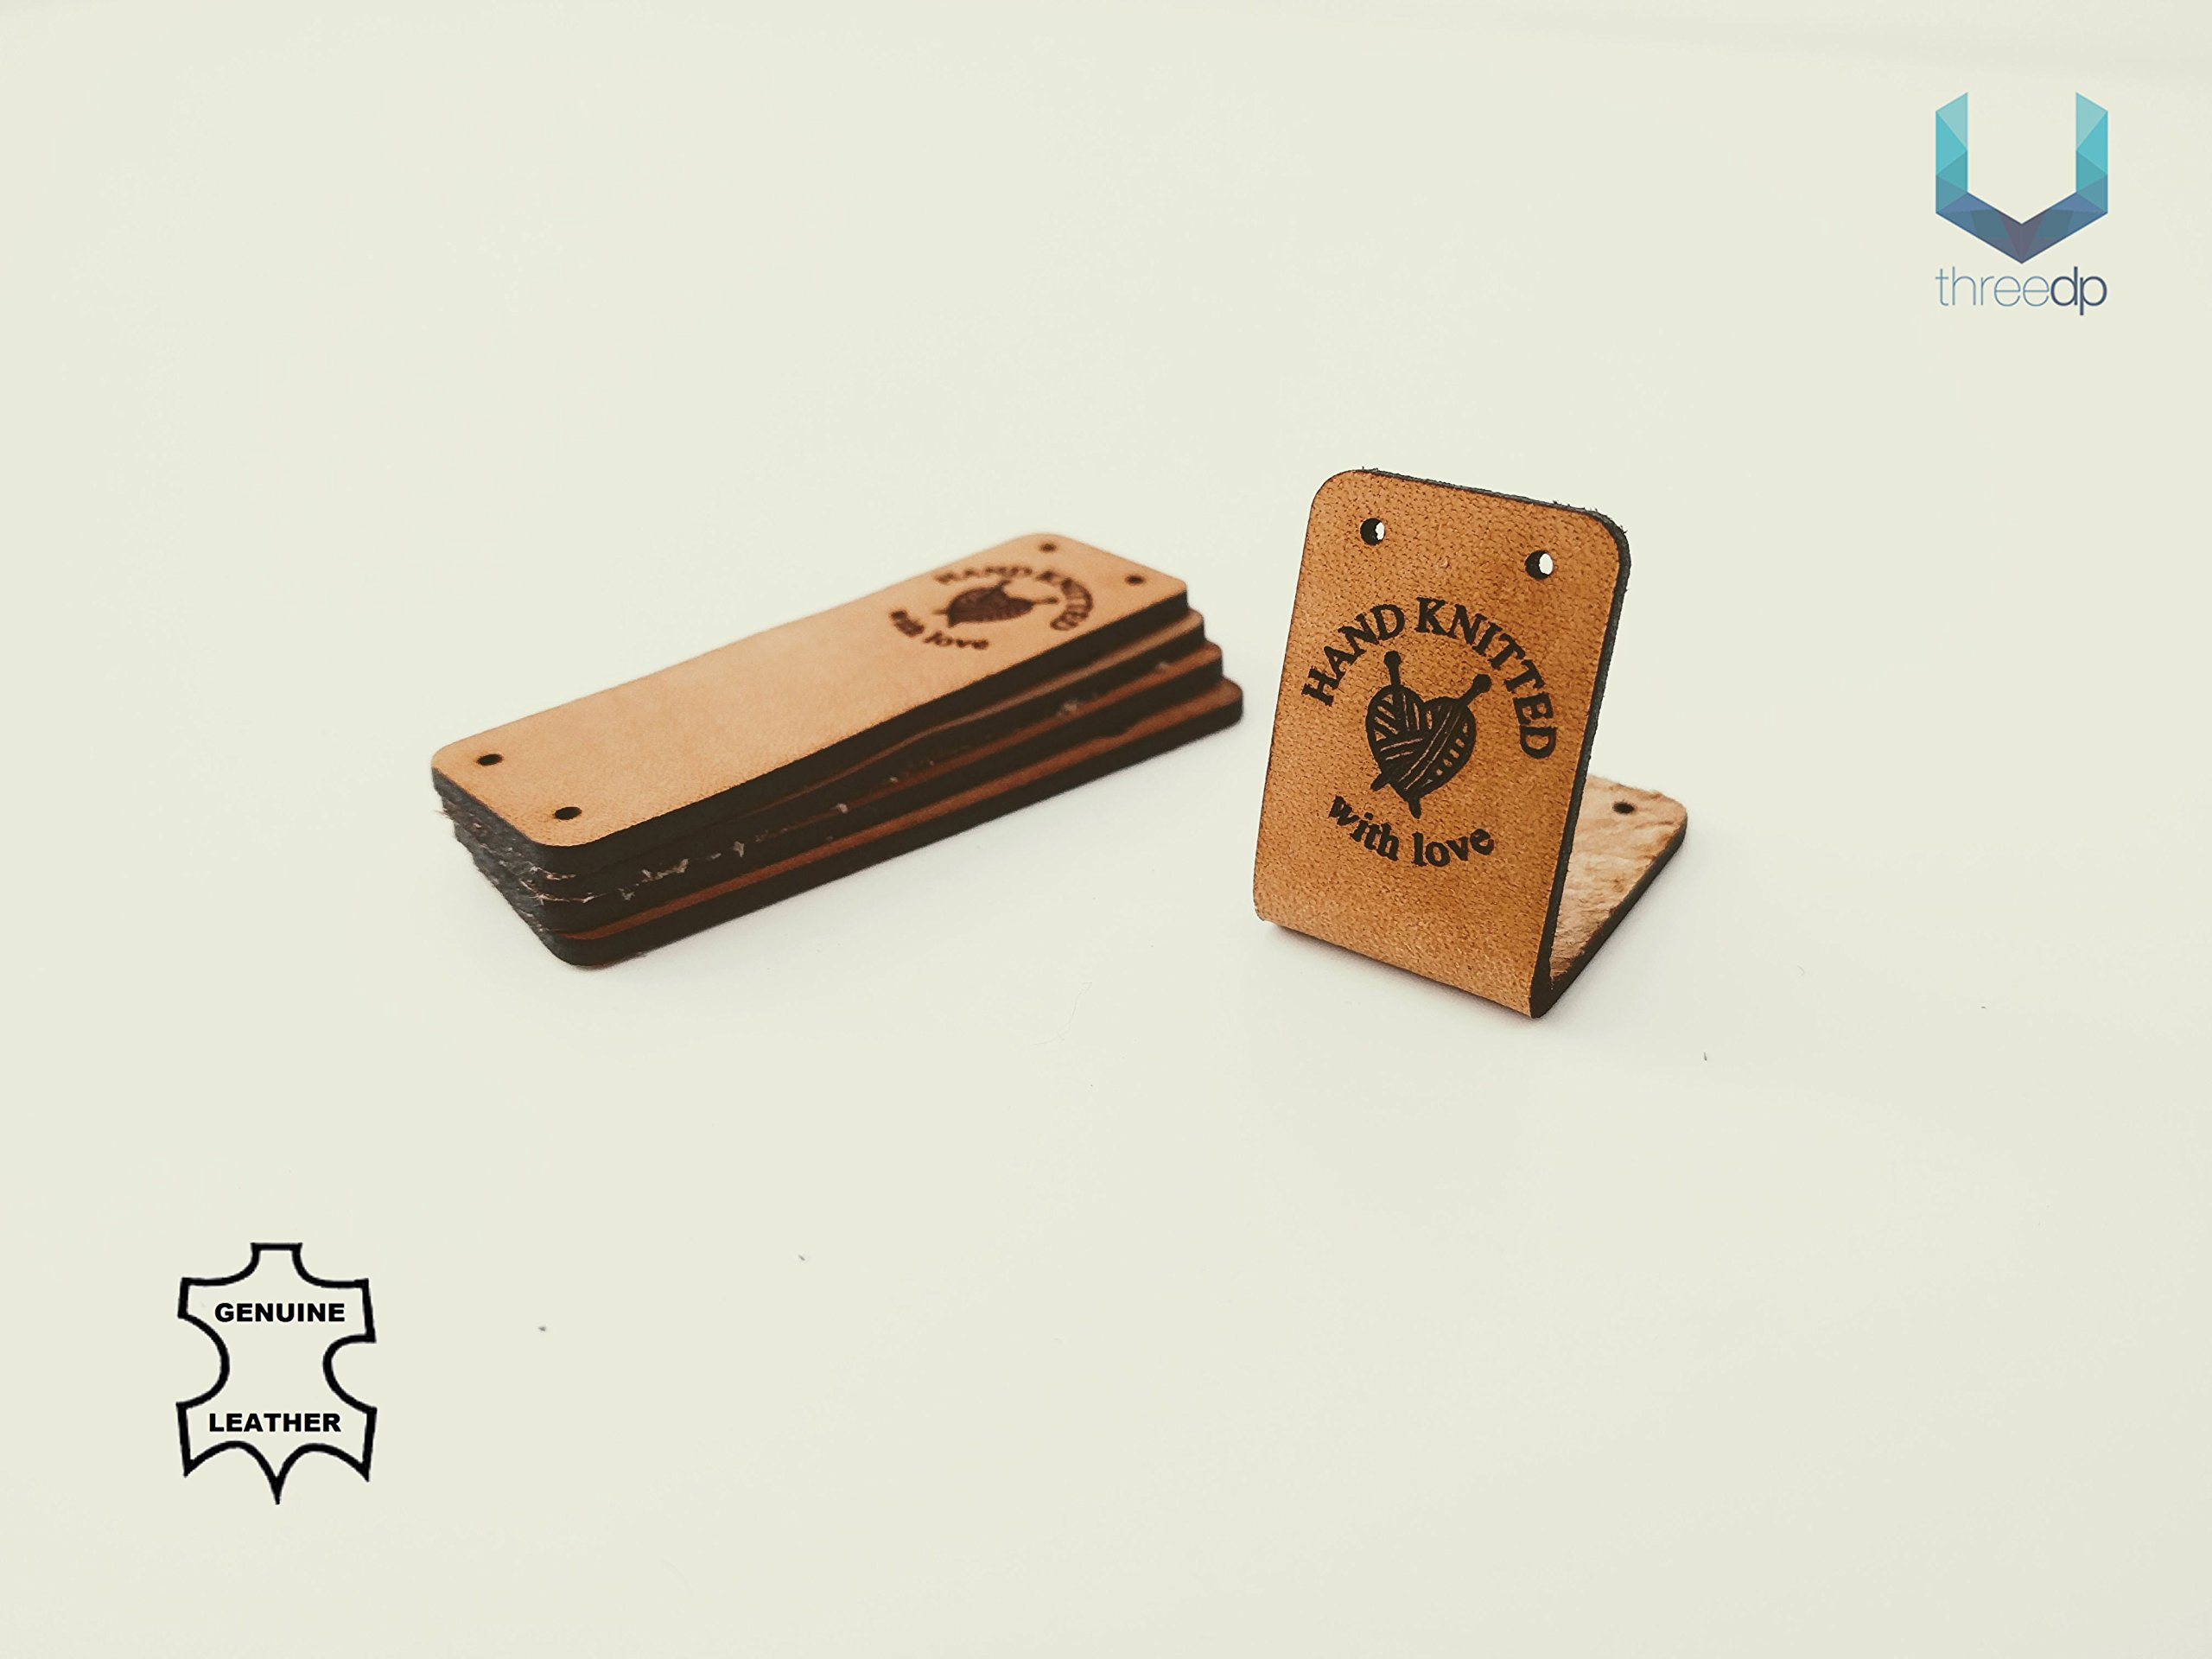 Customizable | Handmade Leather Labels O3''Hand Knitted with Love'' | 15 pcs | Exclusive Engraved Genuine Italian Leather Tags by 3DP (Image #2)